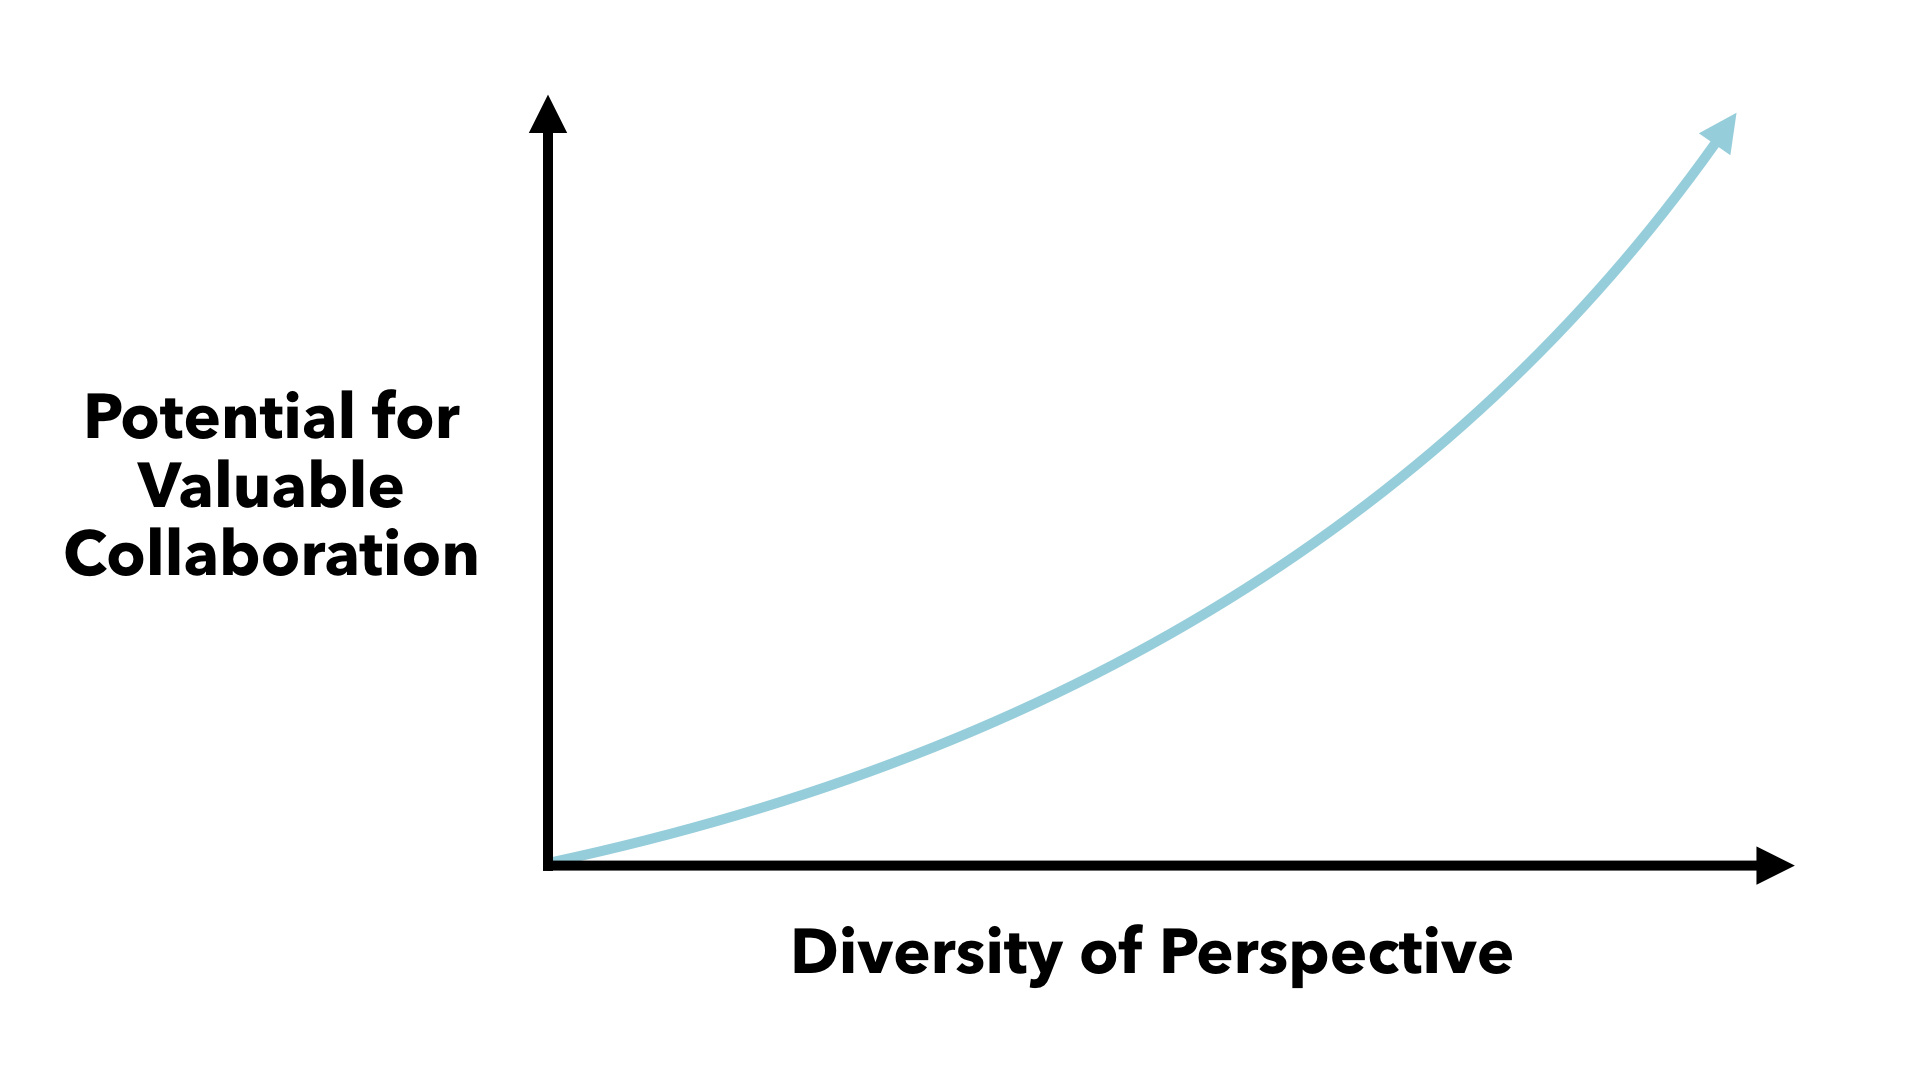 As the diversity of perspective on our teams increases, the potential for valuable collaboration increases.